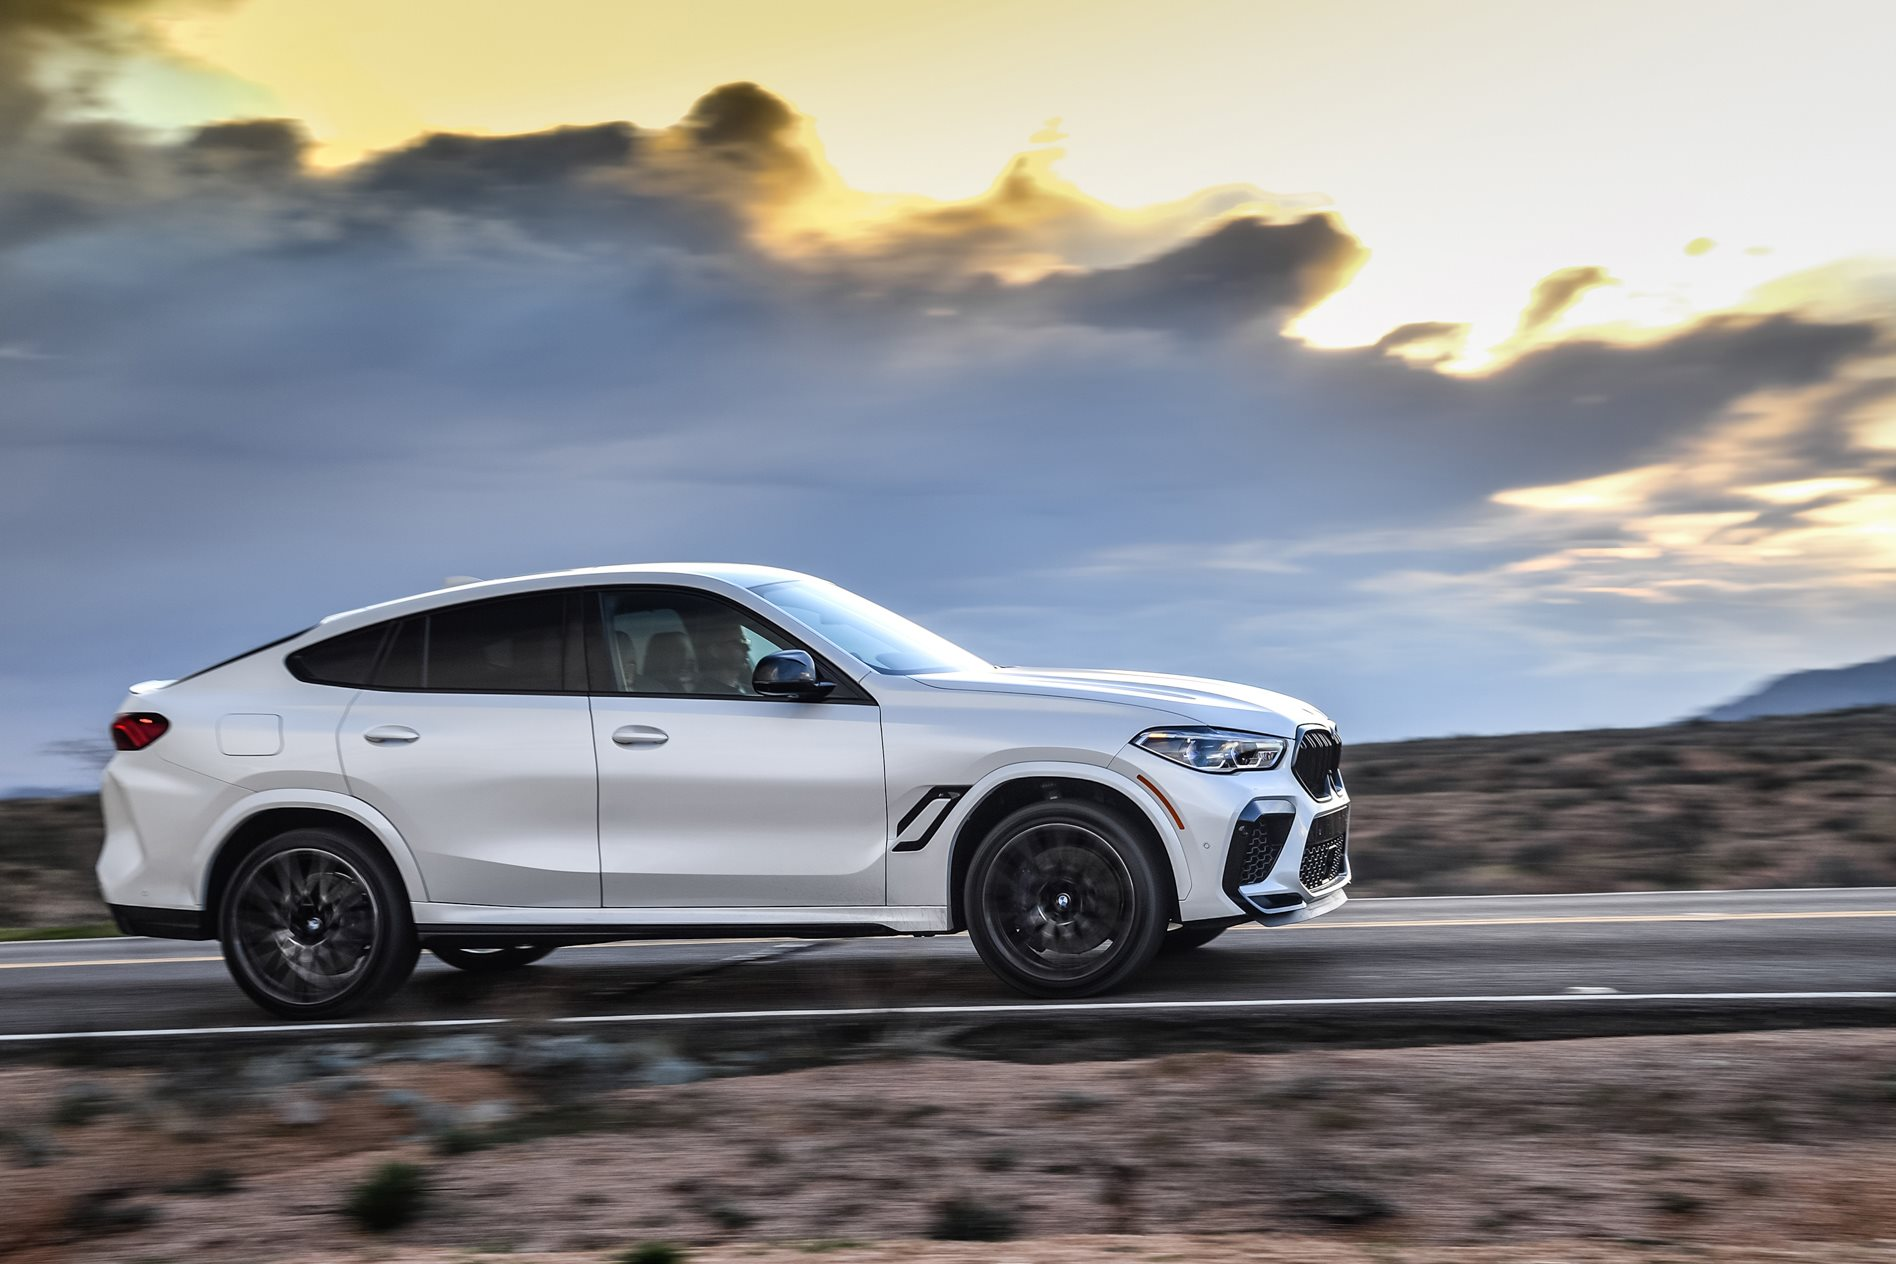 Bmw X6m 2020 Review